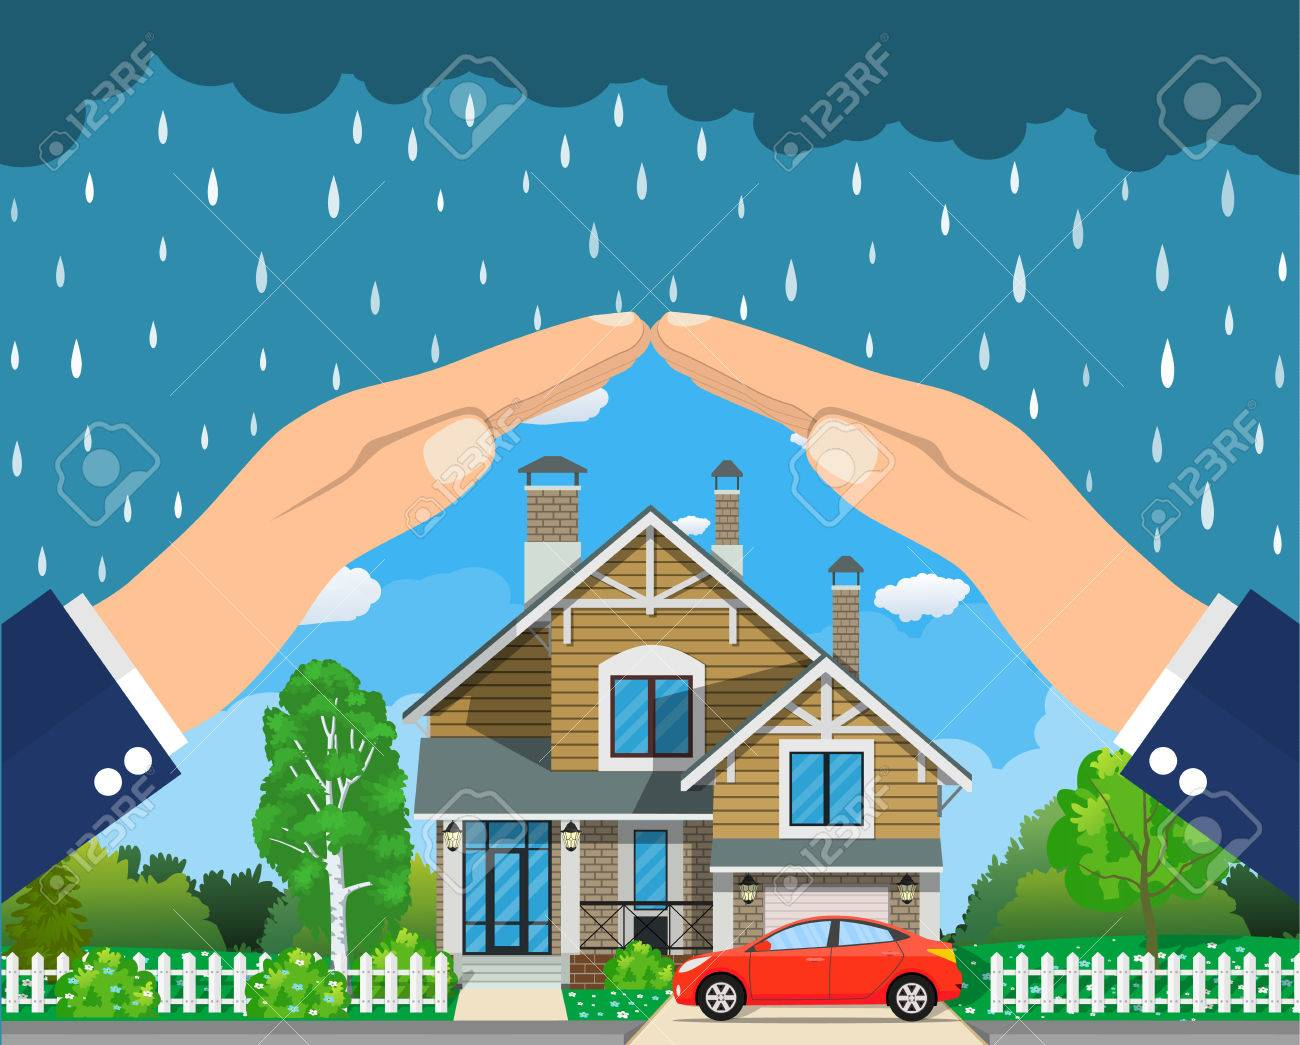 Home insurance concept. - 71766286